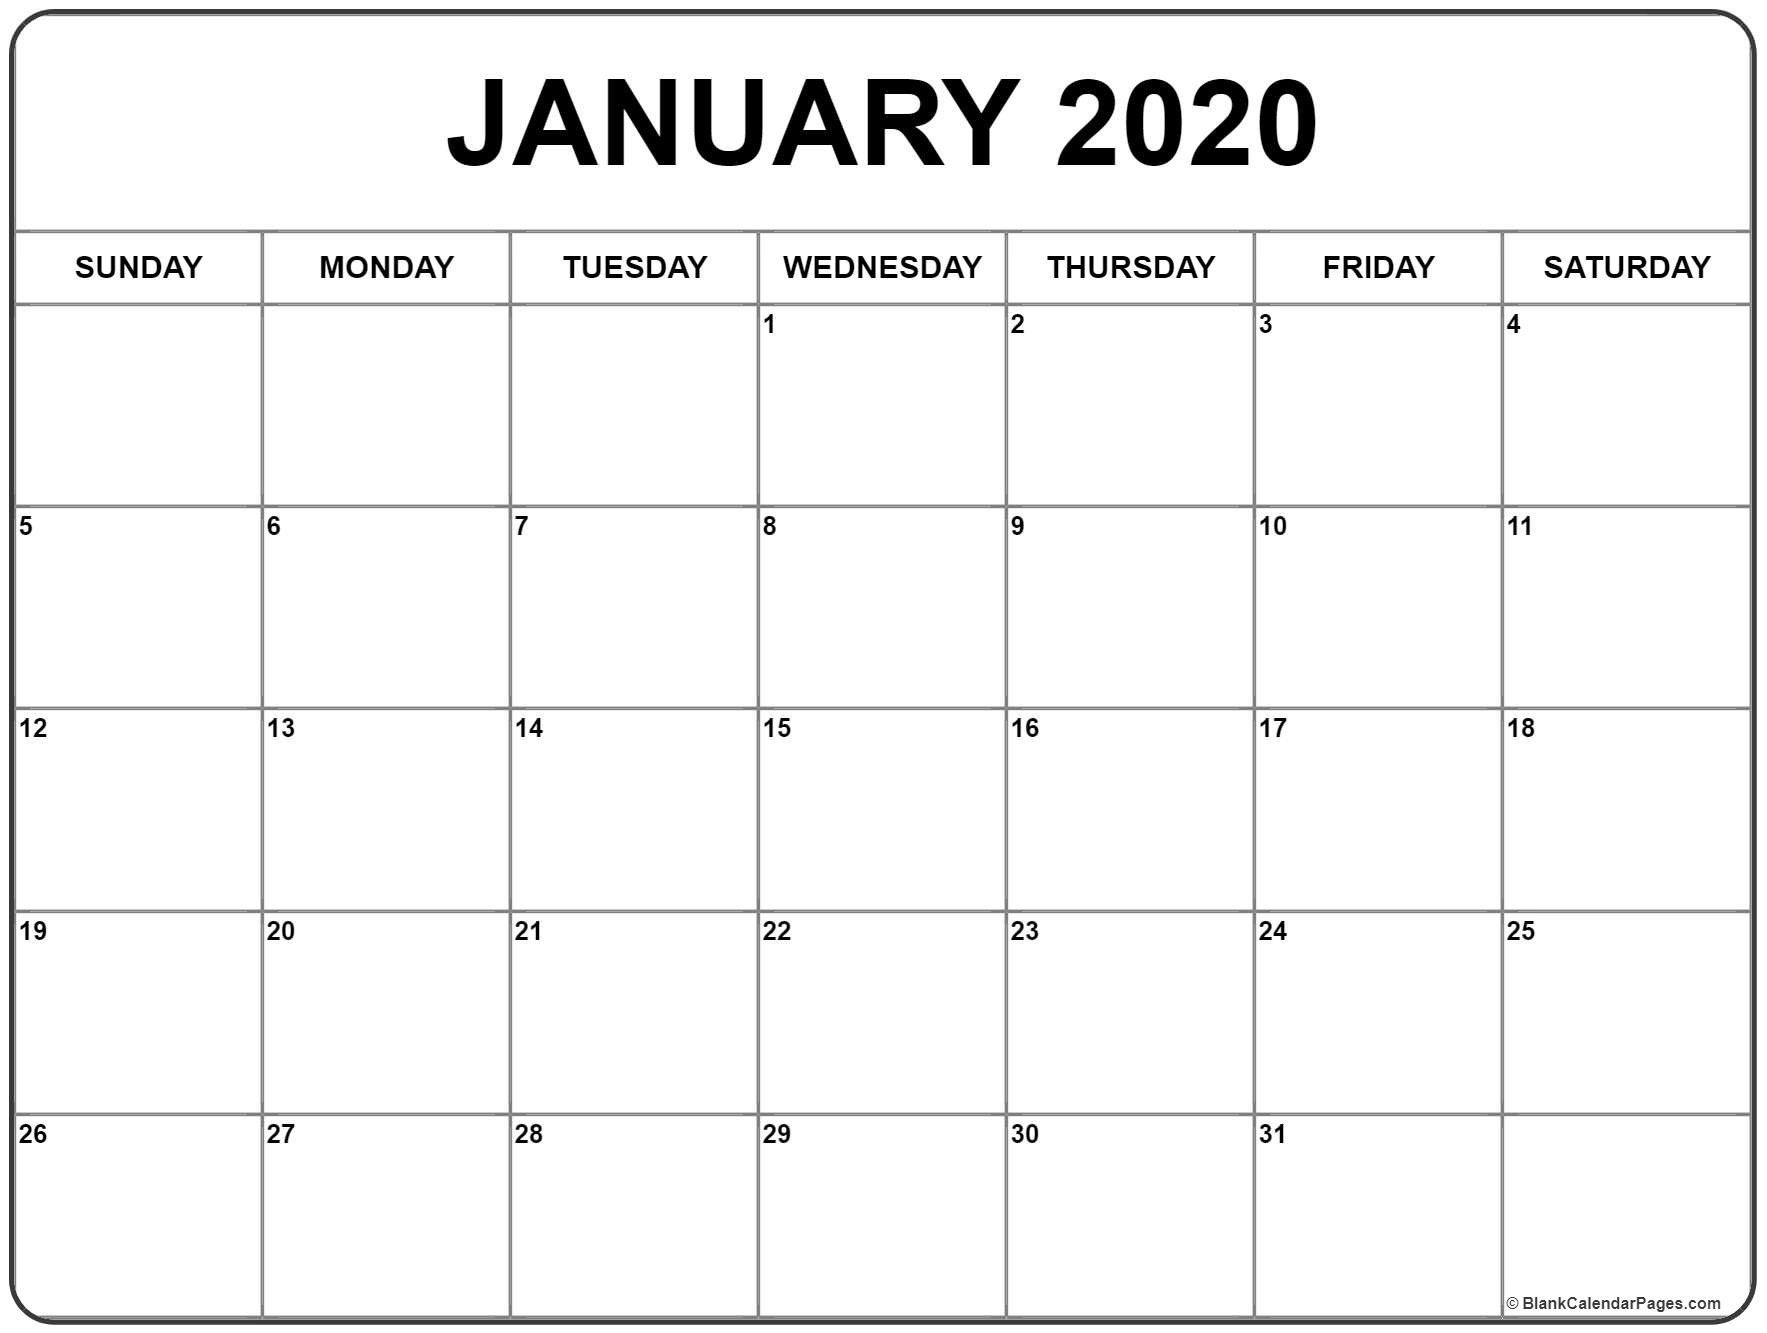 January 2020 Calendar 56 Templates Of 2020 Printable January inside Printable January 2020 Calendar